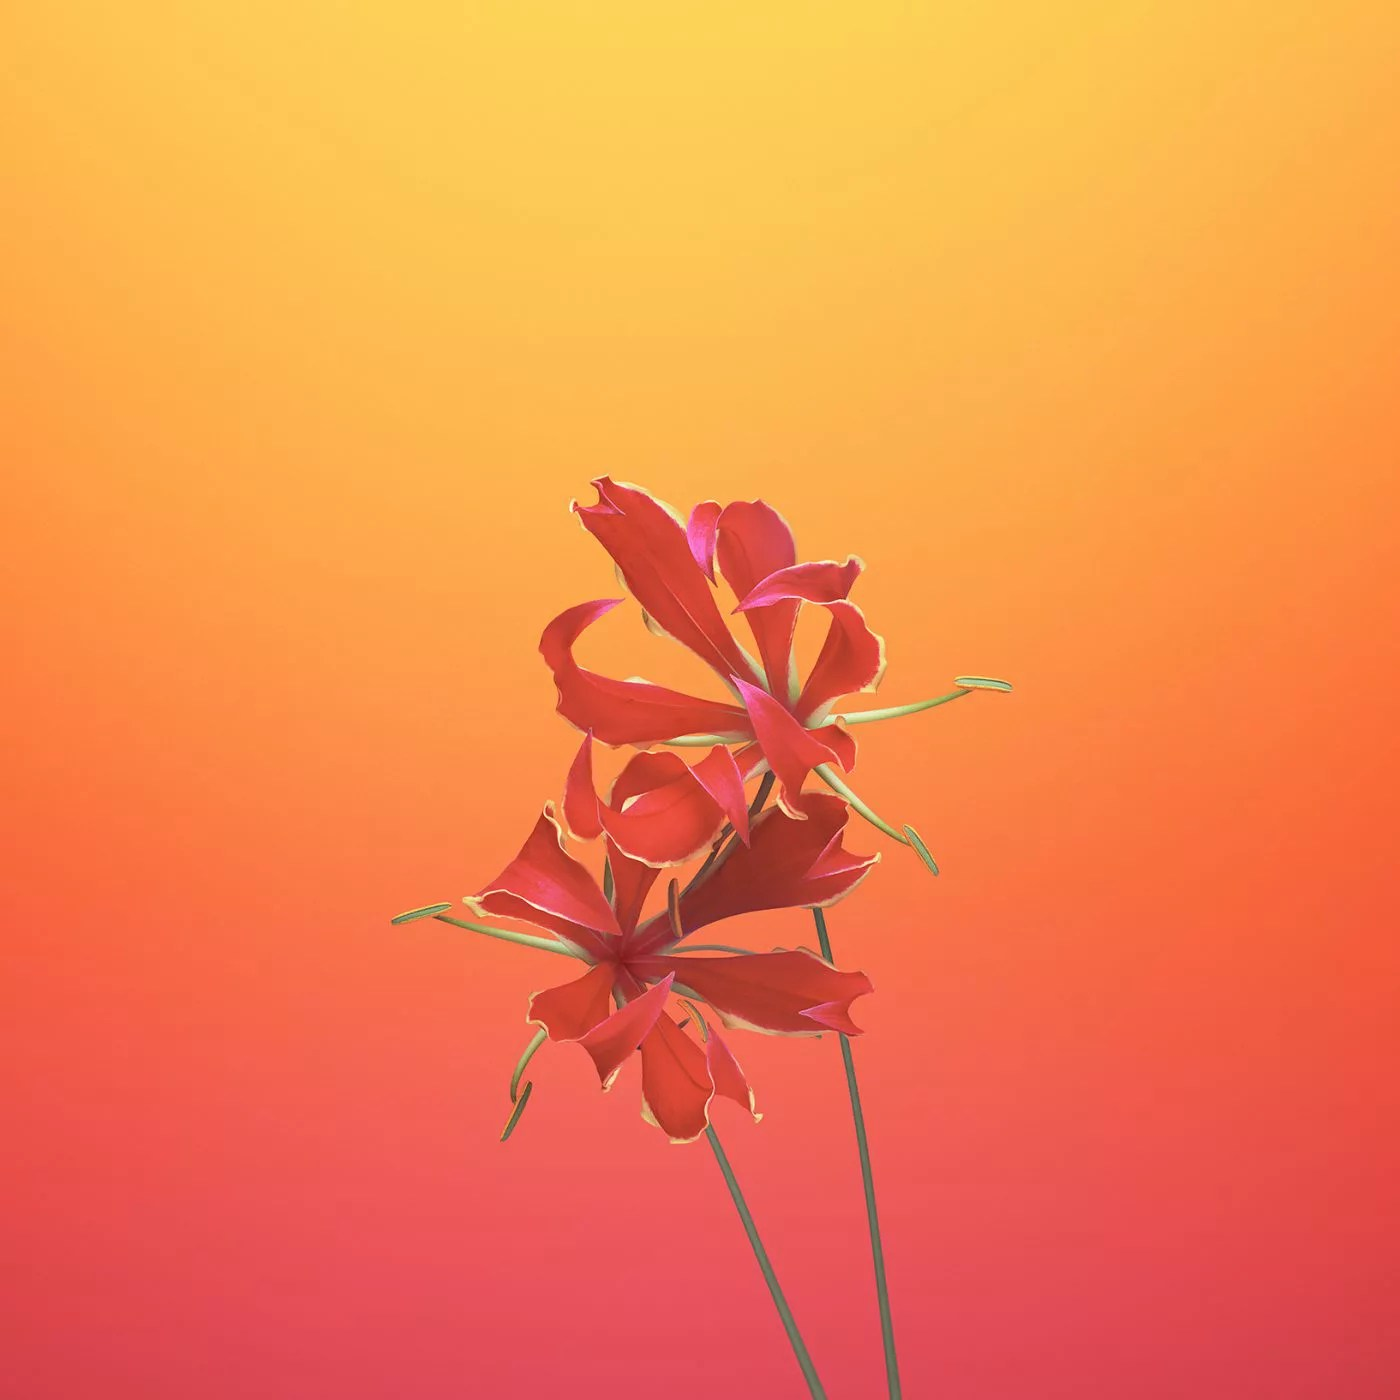 ios_11_gm_wallpaper_flower_gloriosa.jpg